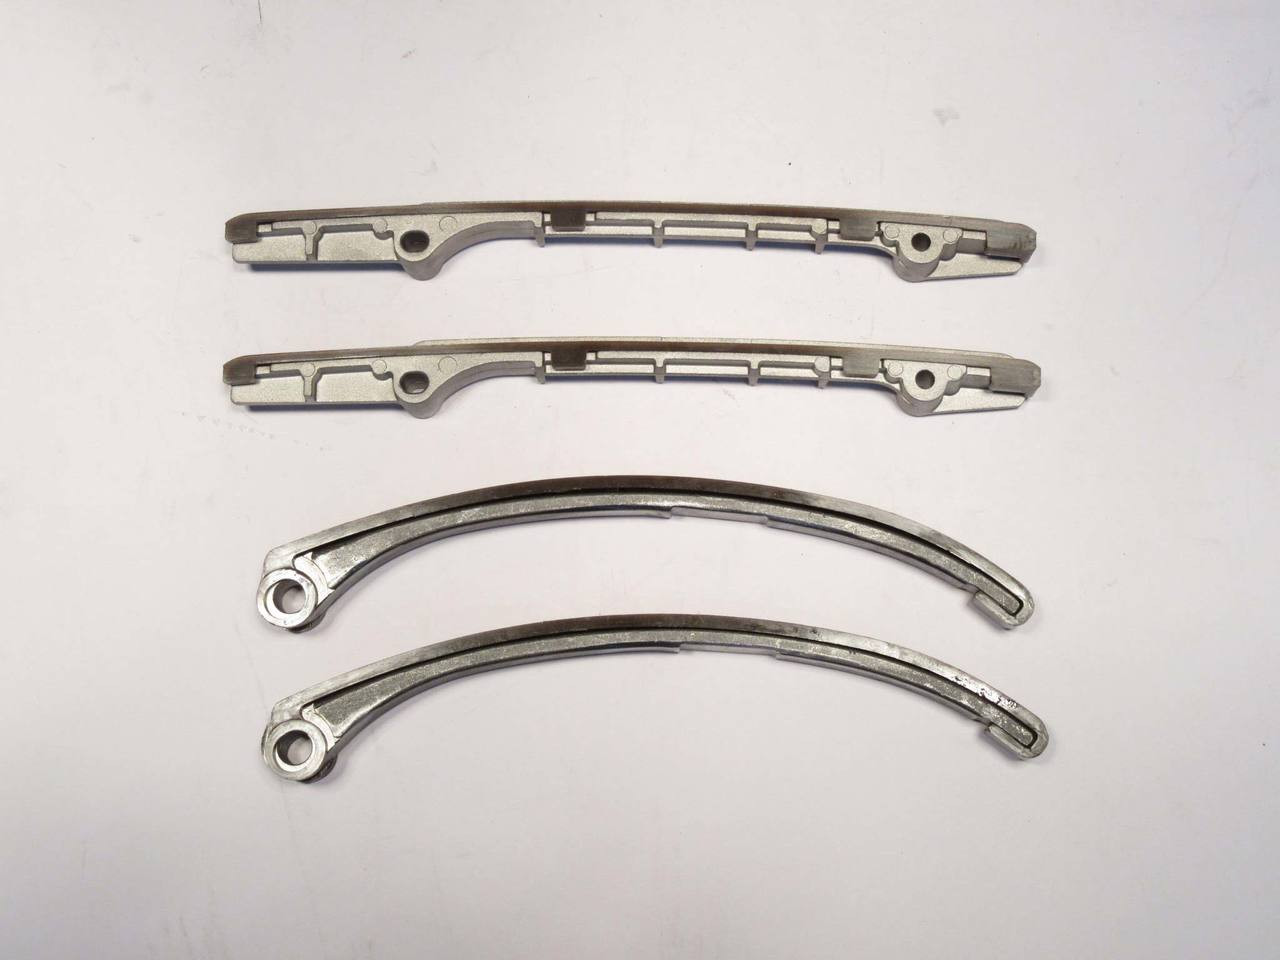 Timing Chain Guide Rail Kit KNCA2025/NCA1998AB